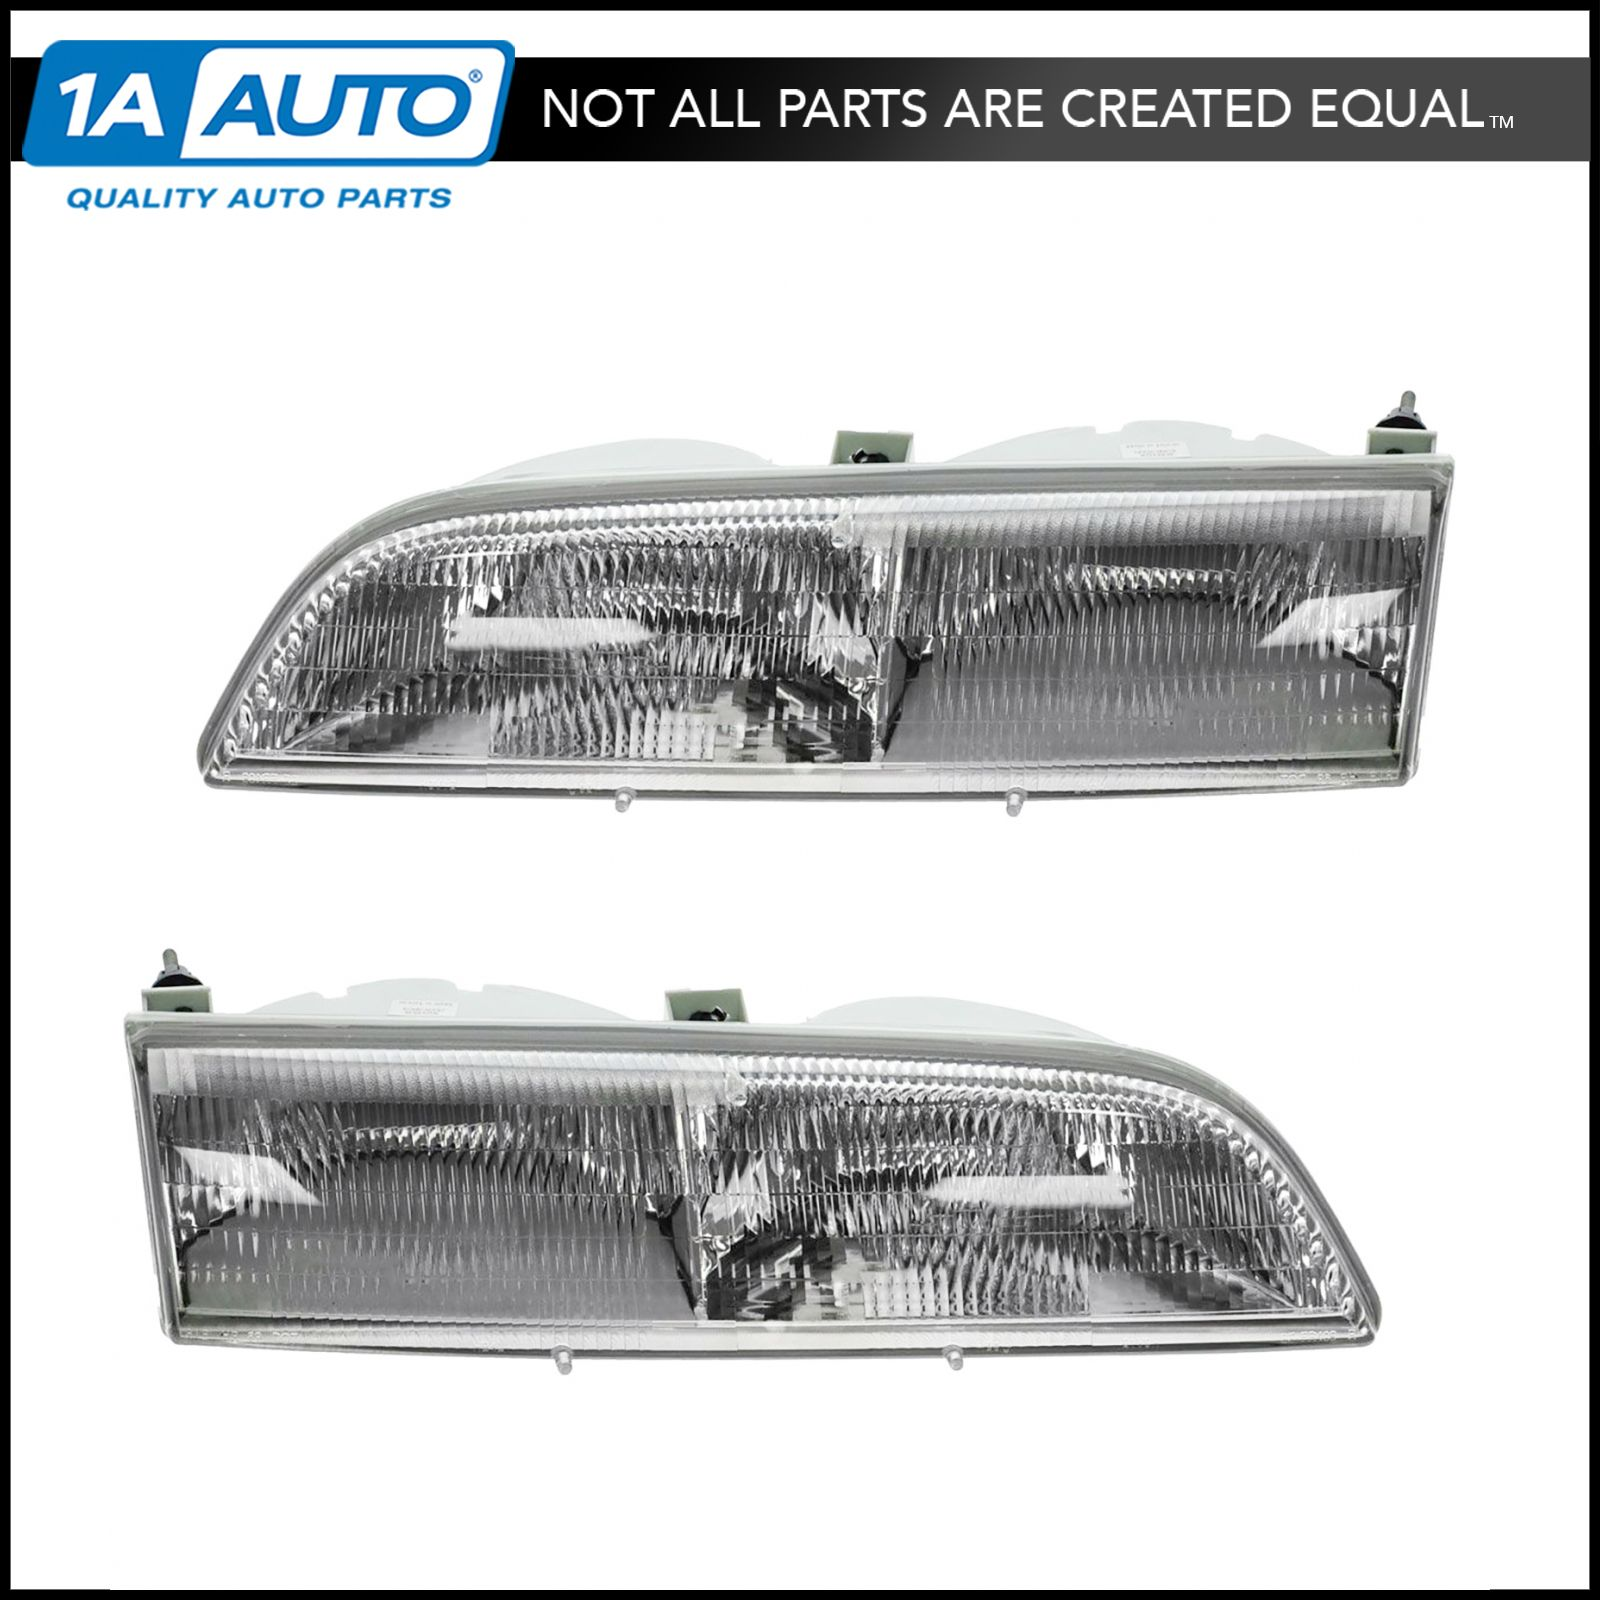 1993 Ford Thunderbird Exterior: Headlights Headlamps Left & Right Pair Set For 89-93 Ford